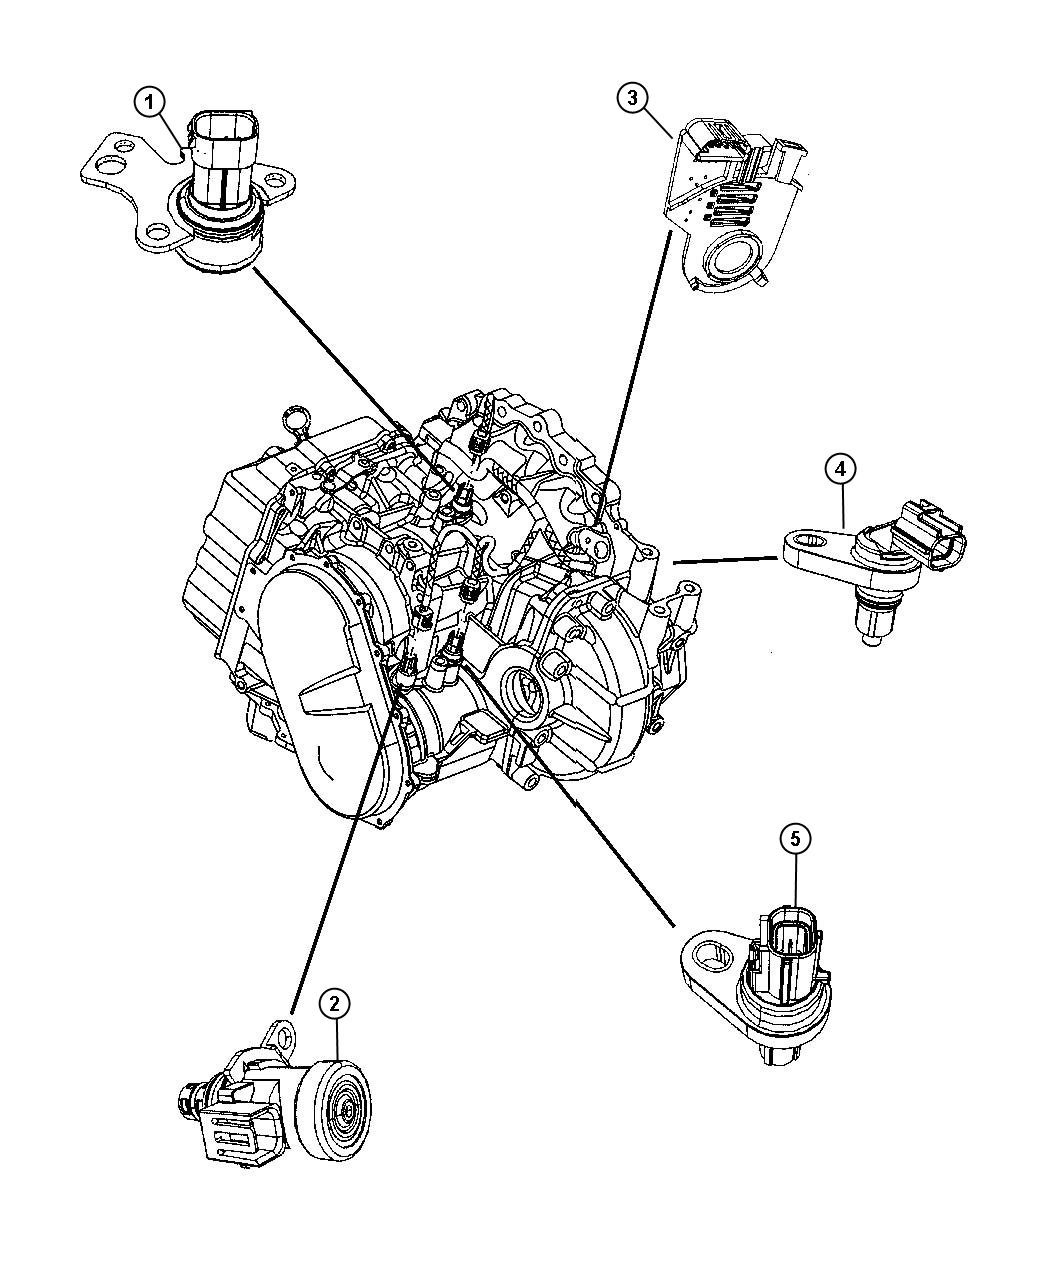 Its Electric Well Electrical Common Problems With The Chrysler 62te on Dodge Grand Caravan Electrical Diagram